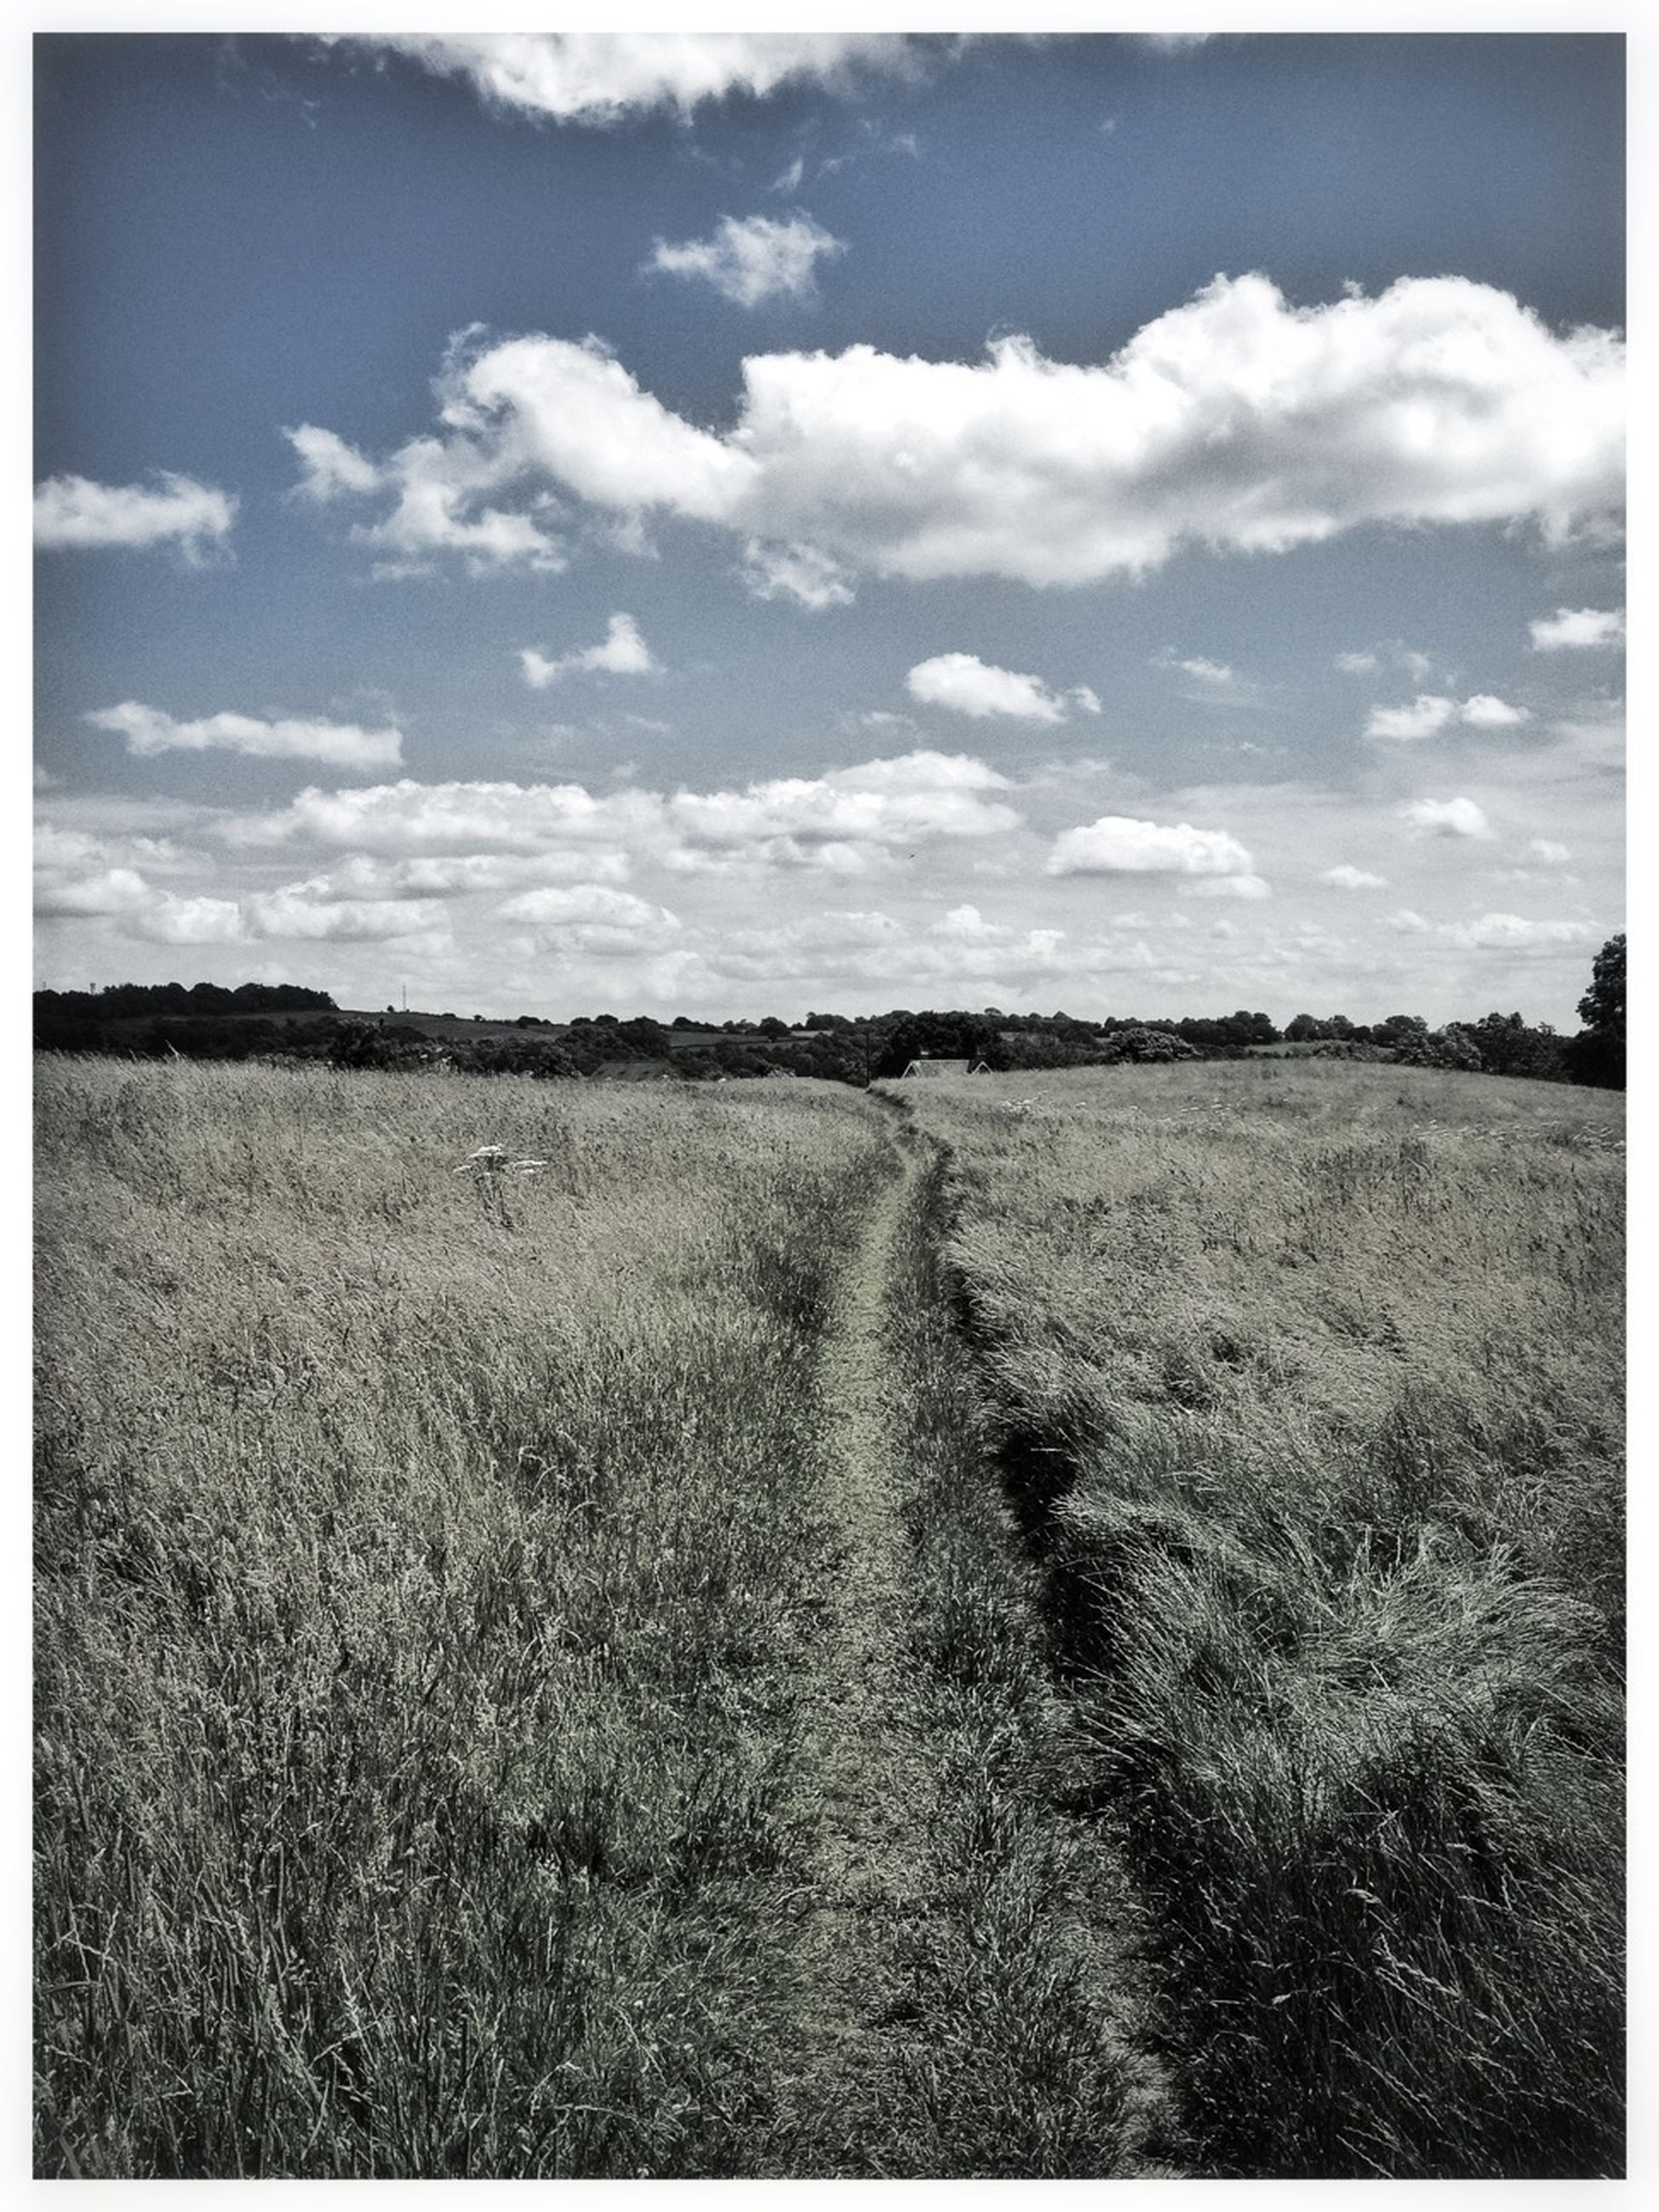 field, landscape, sky, tranquil scene, tranquility, rural scene, agriculture, grass, scenics, horizon over land, cloud - sky, nature, farm, beauty in nature, transfer print, cloud, auto post production filter, growth, grassy, crop